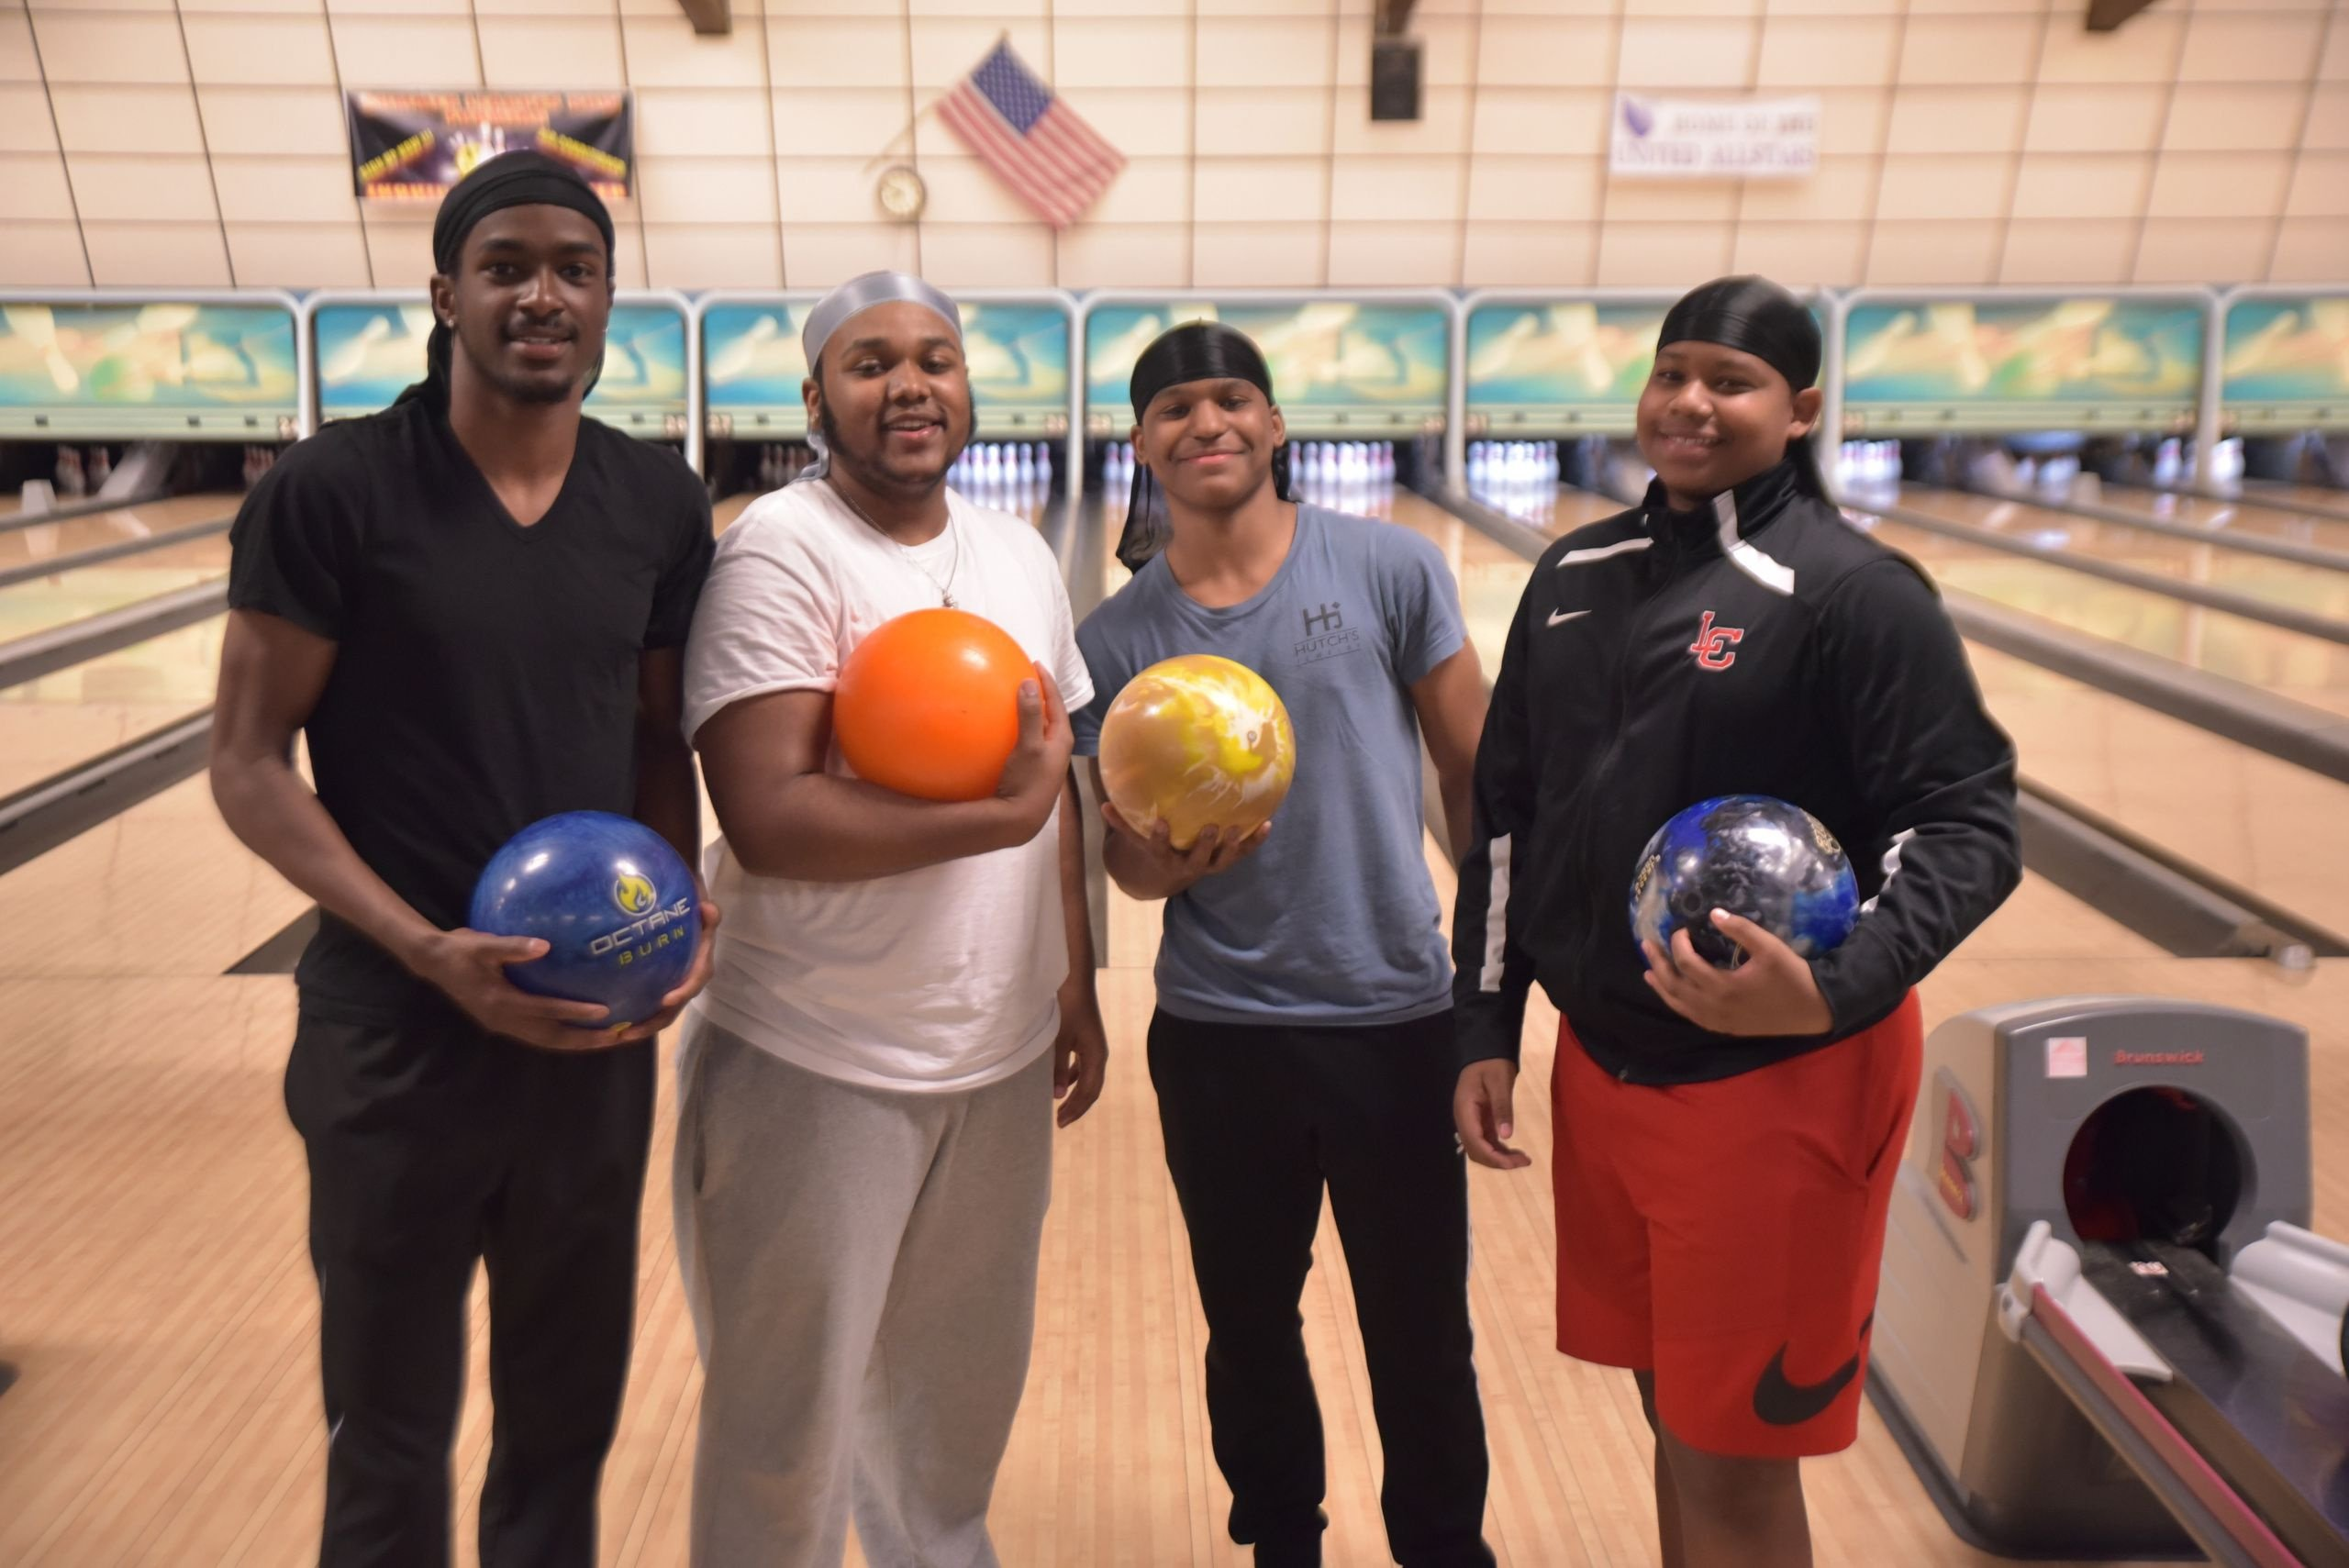 Group of Bowlers